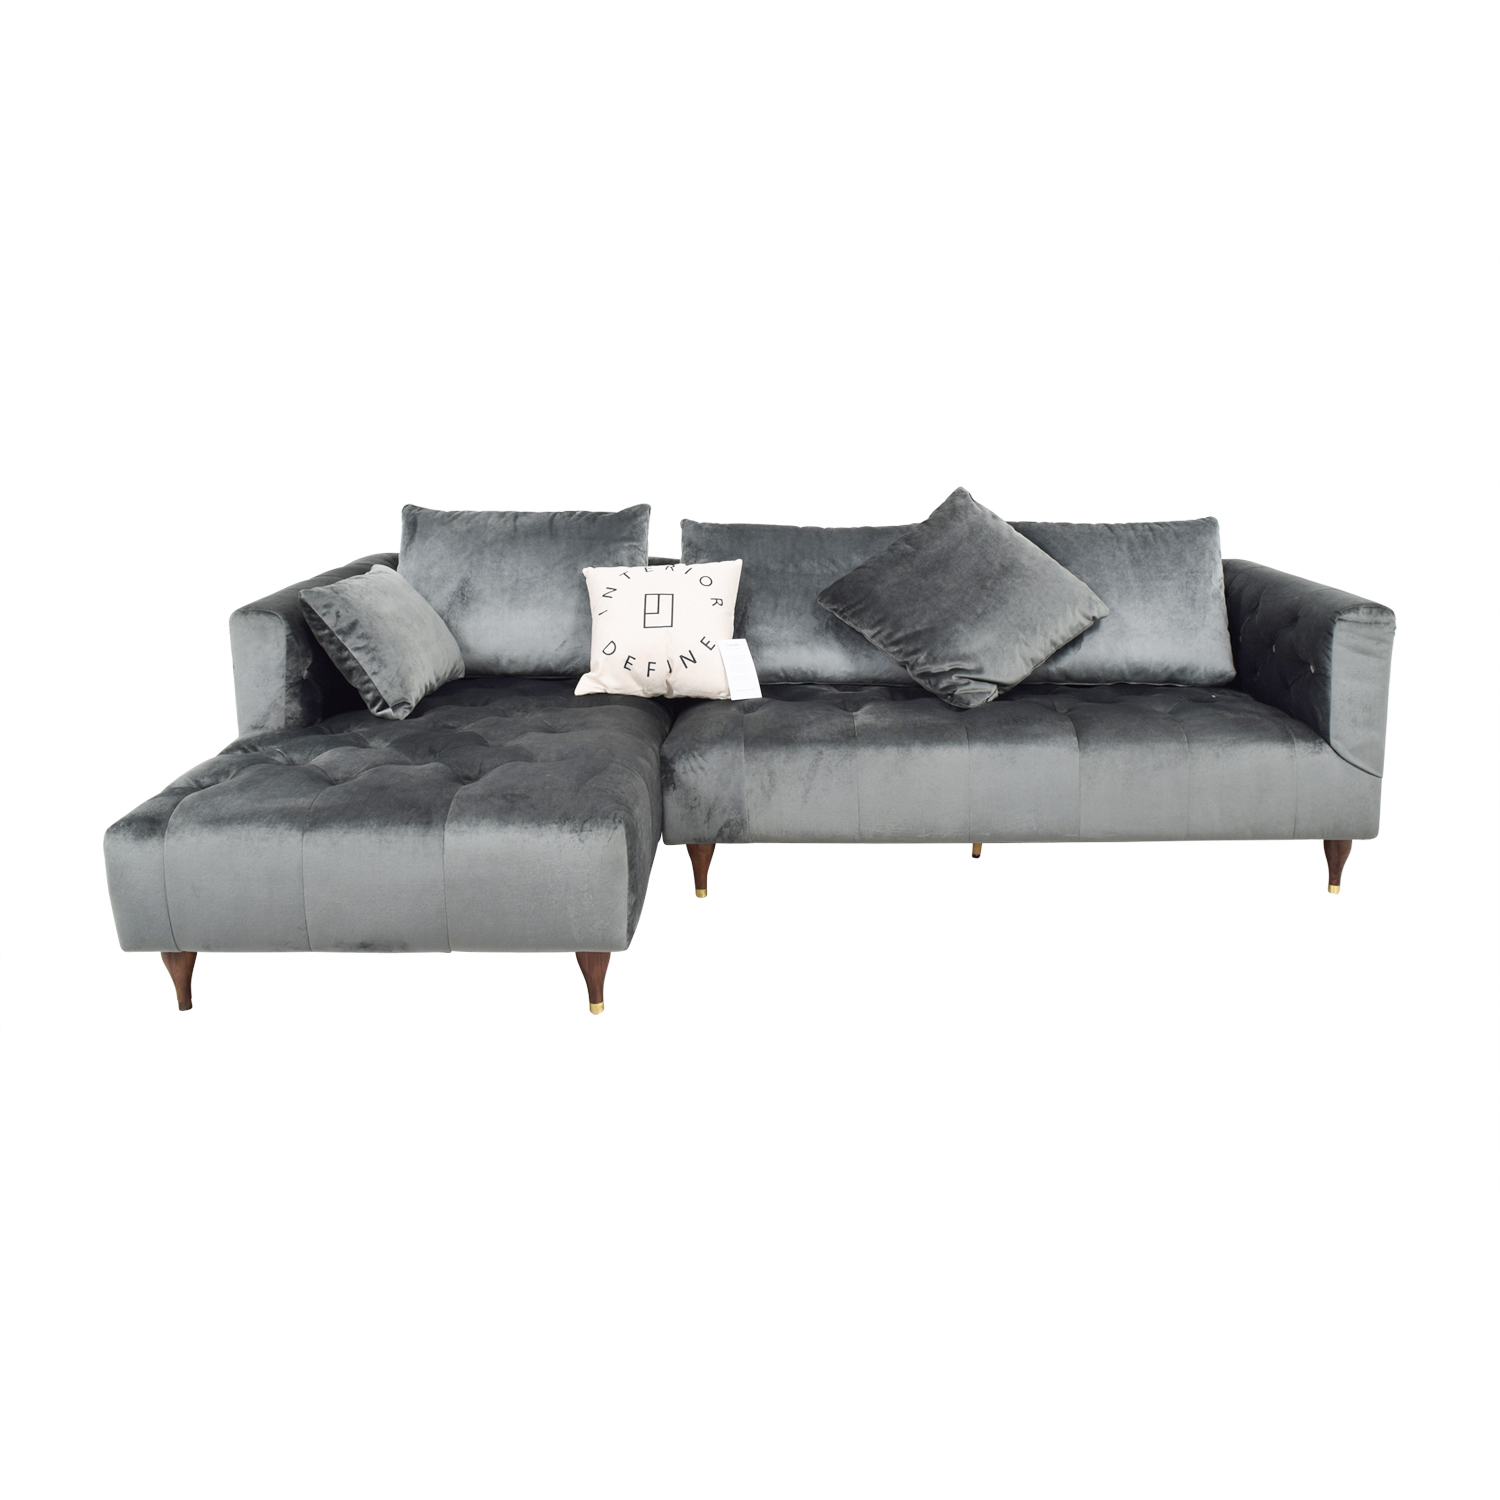 Chesterfield Sectional Sofa 65 Off Ms Chesterfield Narwhal Left Chaise Sectional Sofas